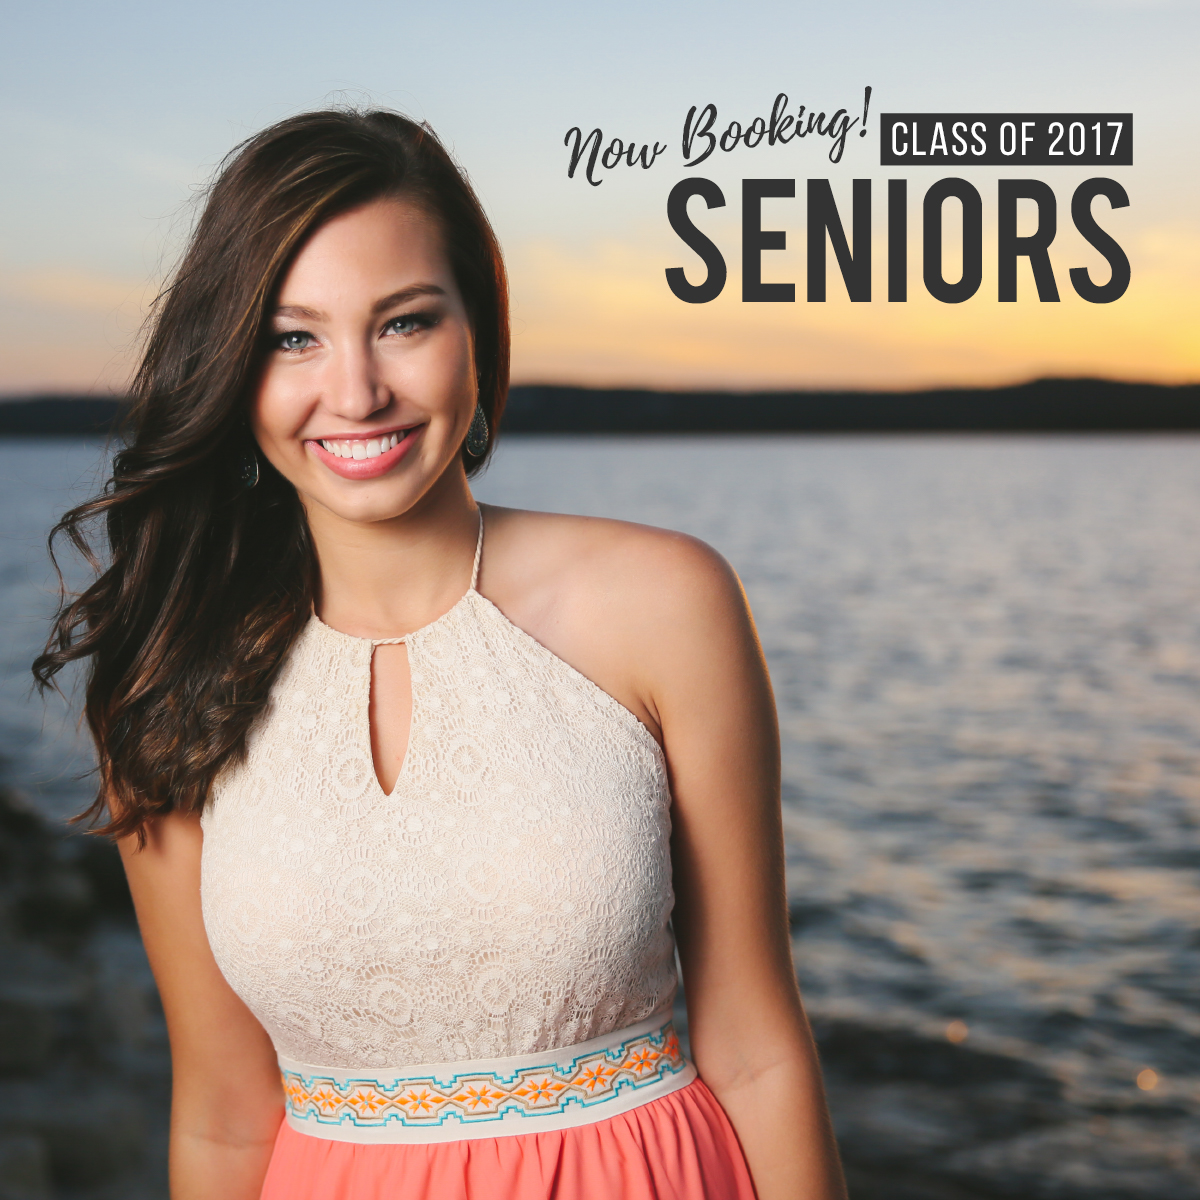 Now Booking Class of 2017 Seniors